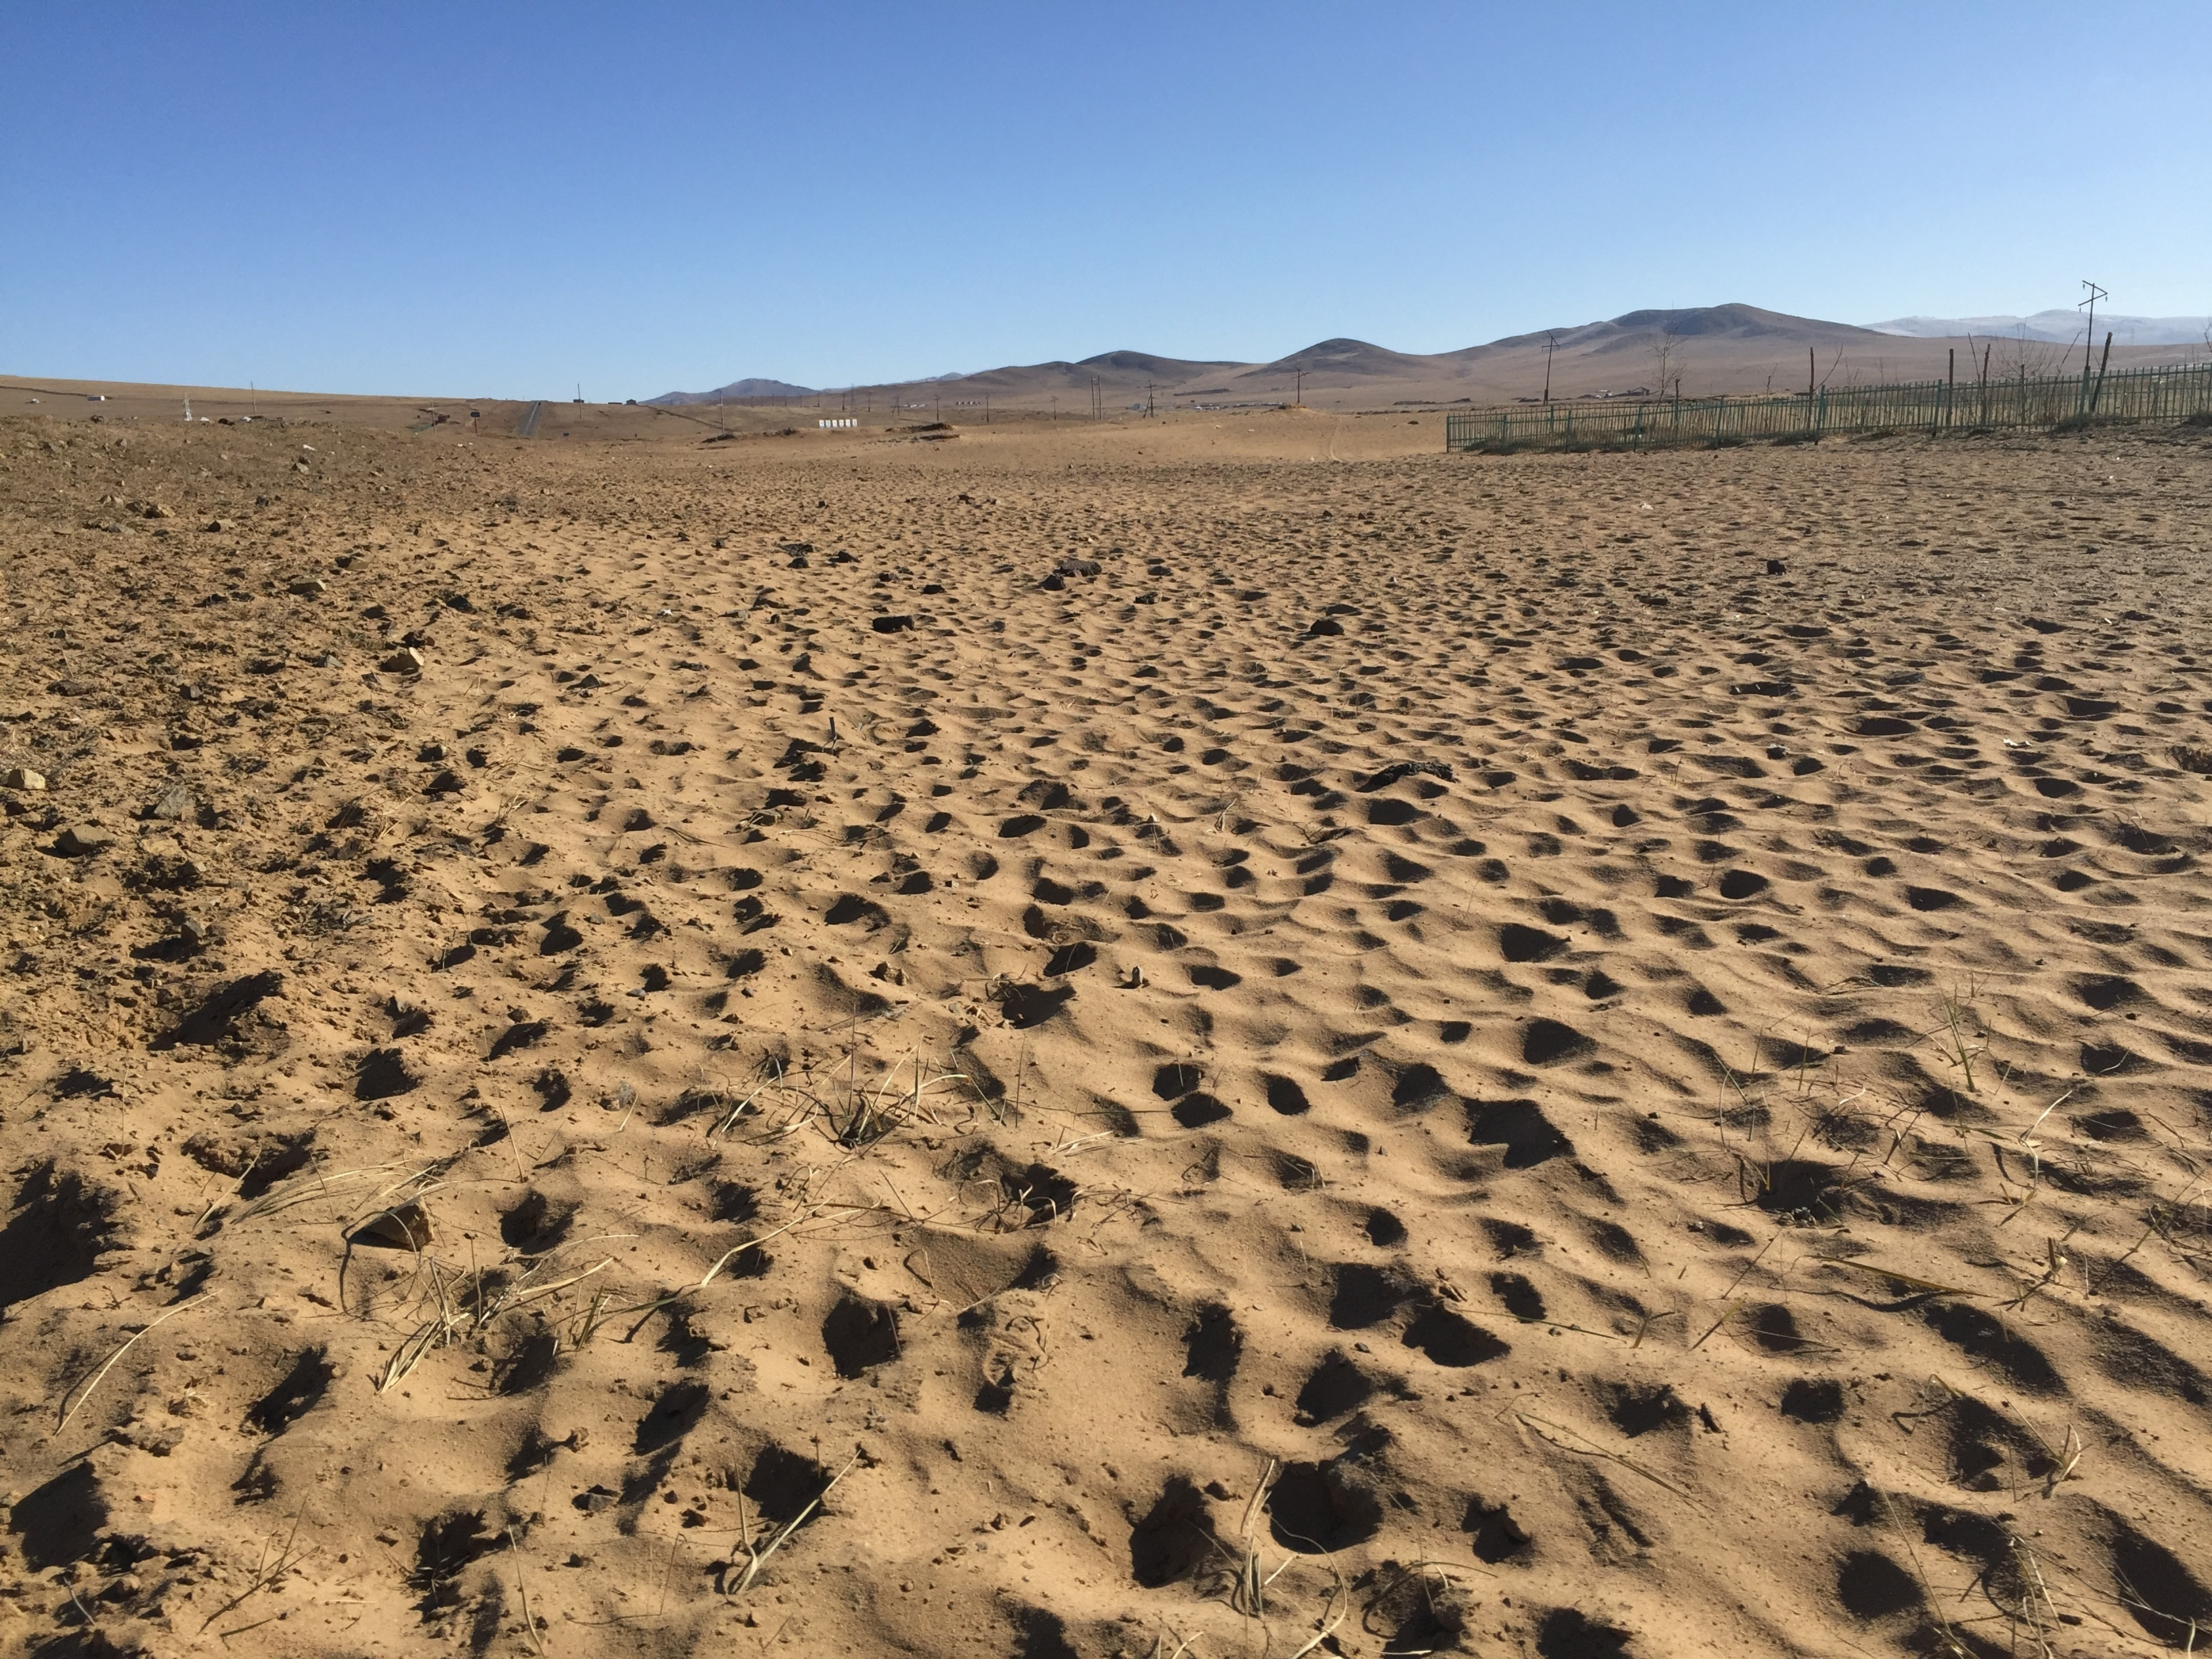 In the place where Bish has pitched her ger, or tent, the effects of overgrazing are obvious. Sand dunes appear where grass used to grow. Rob Schmitz/NPR.